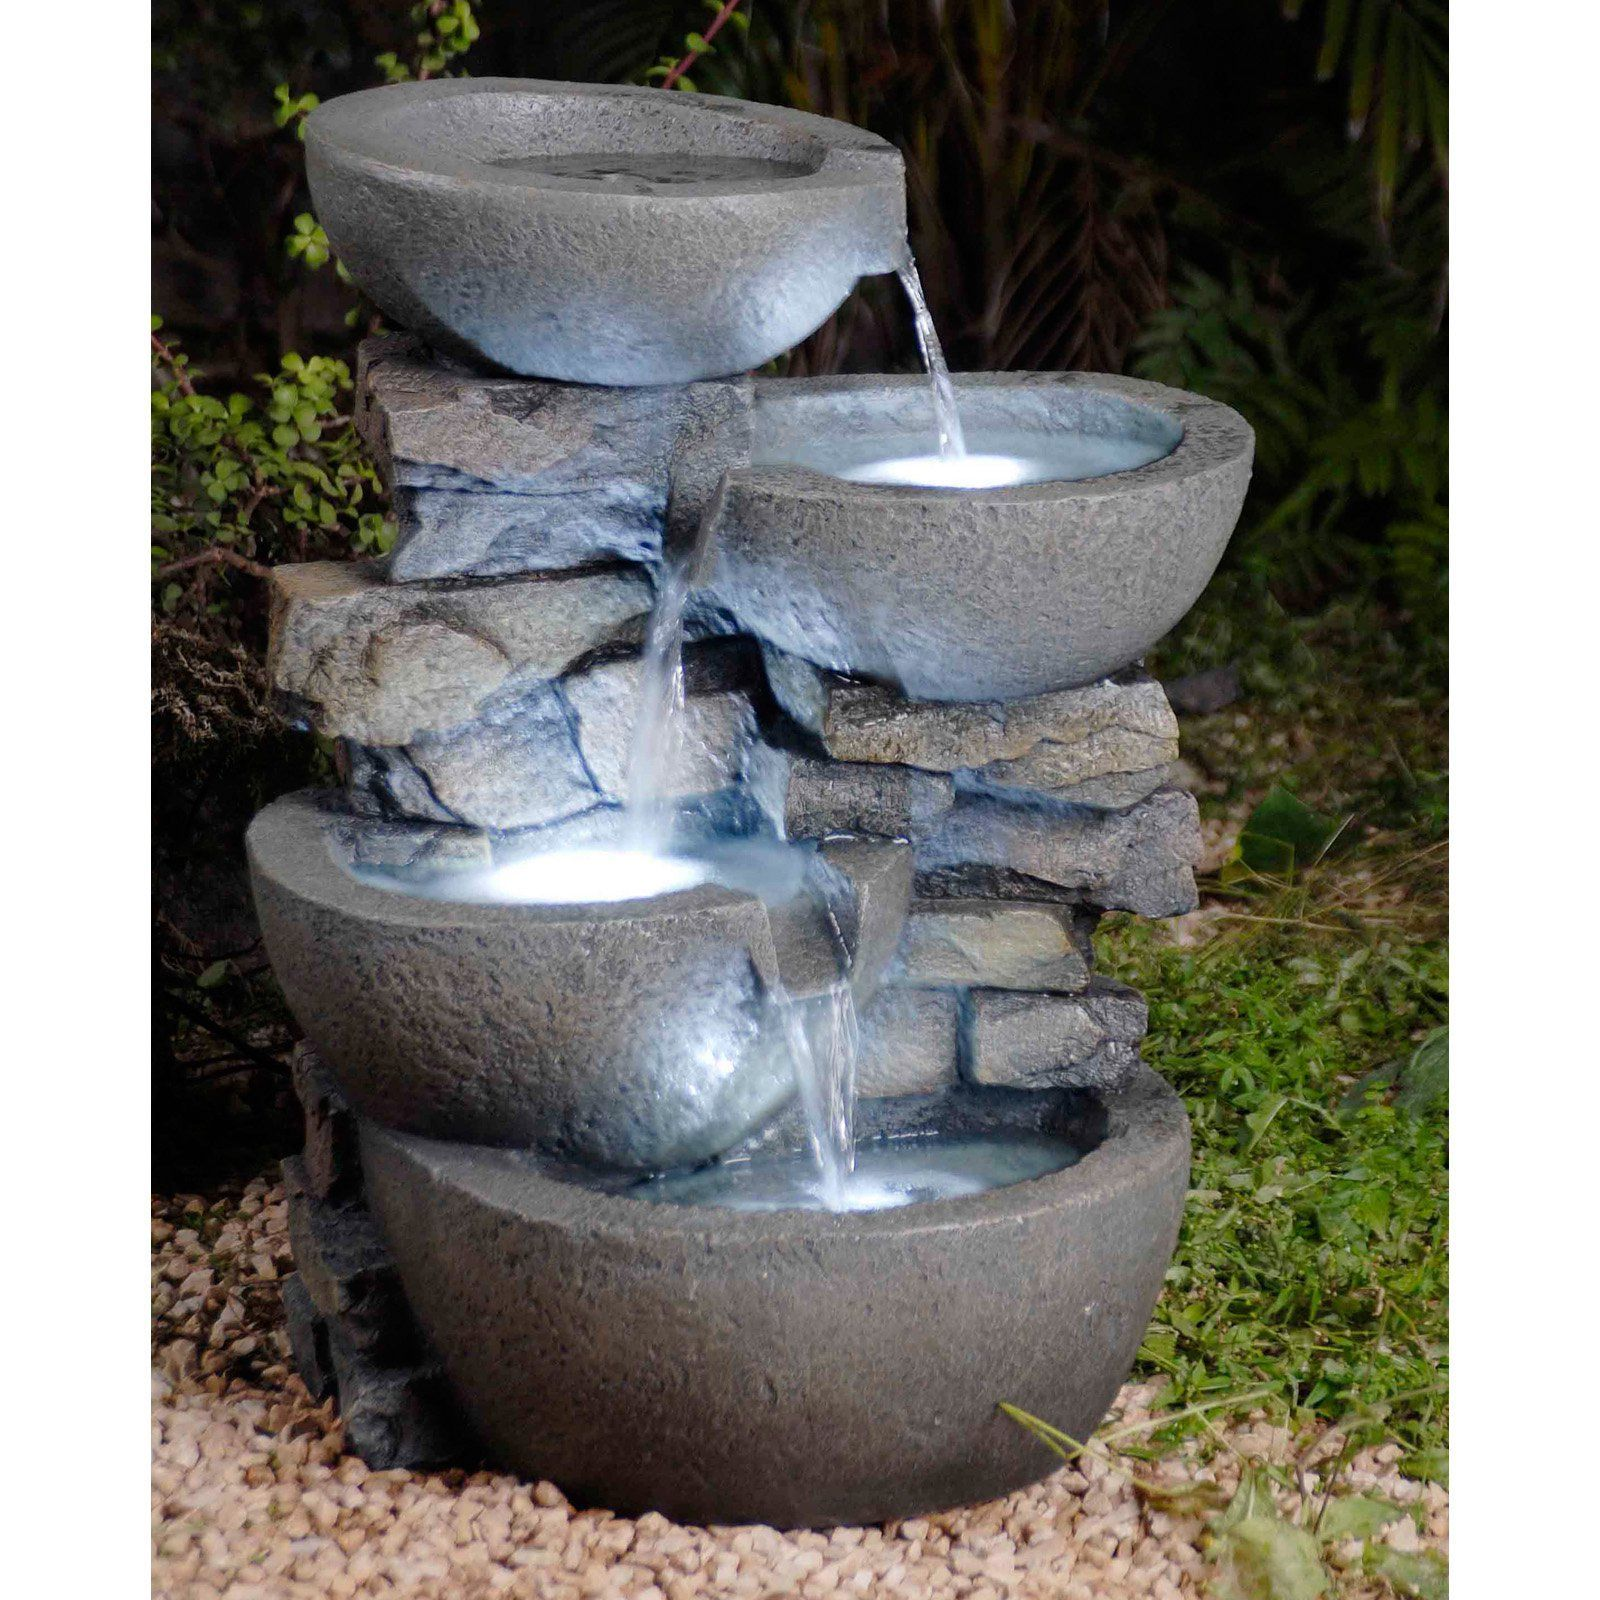 Jeco Modern Bowls Outdoor Fountain with Led Lights About Jeco